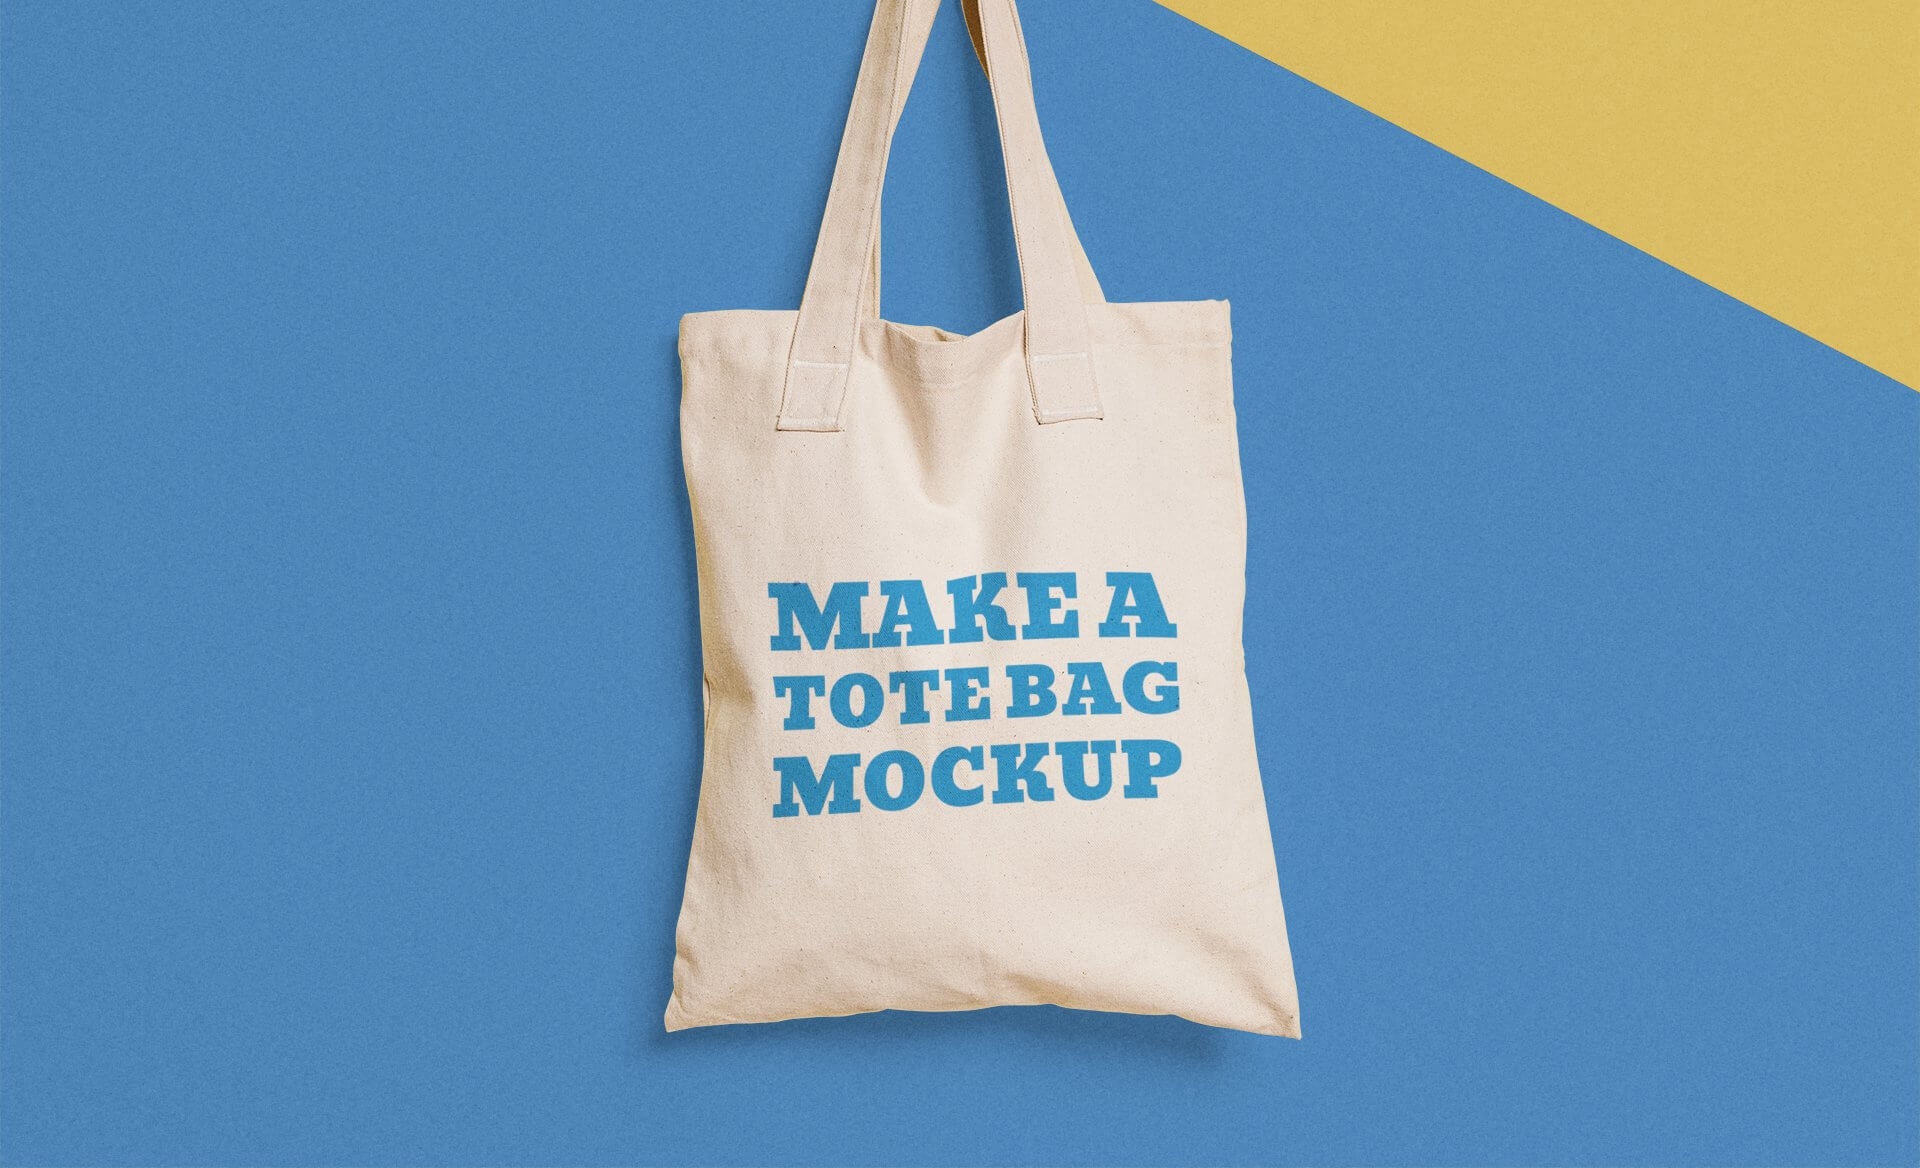 Check out of a wide assortment of food bag mockups from template updates. Promote Your Designs With Tote Bag Mockups Placeit Blog